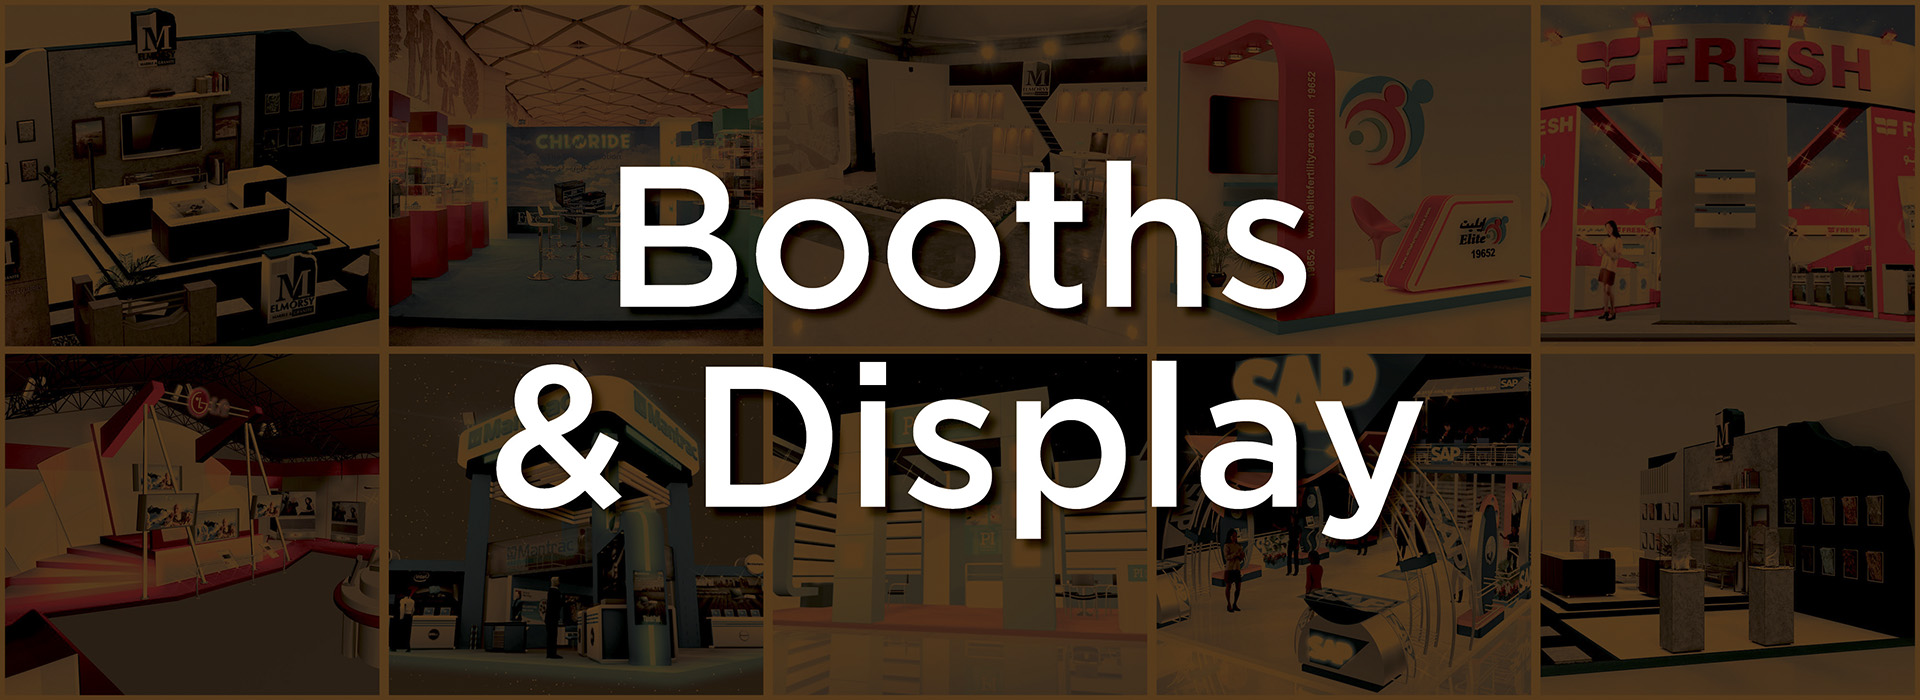 Booths & Display